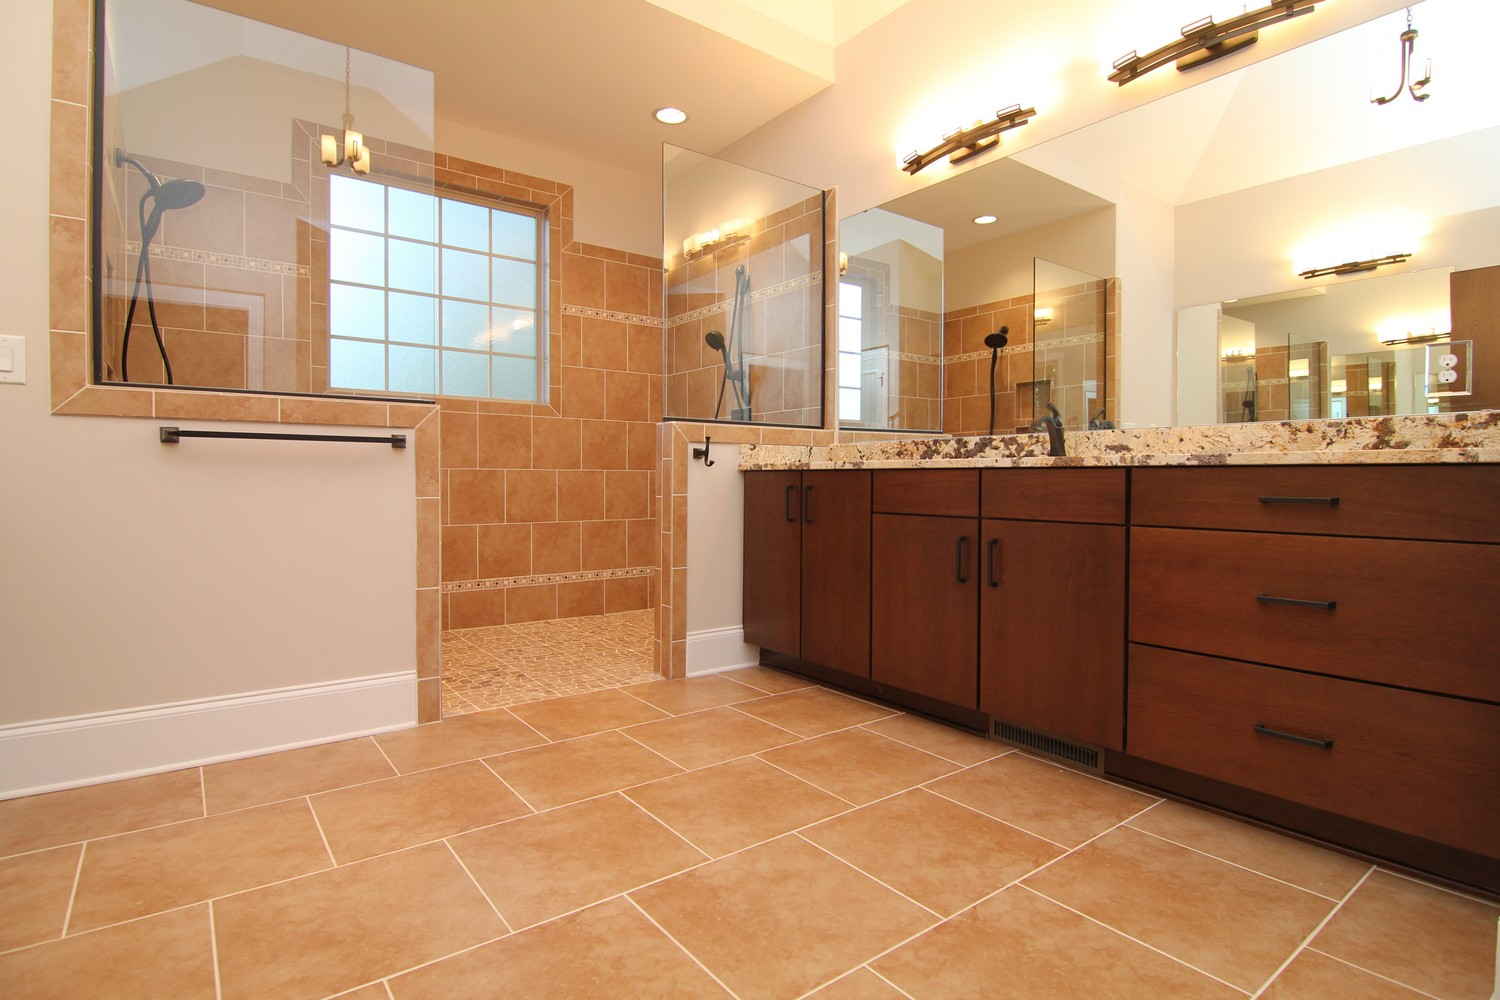 Likeable Handicap Accessible Bathroom Design Ideas Of This ...